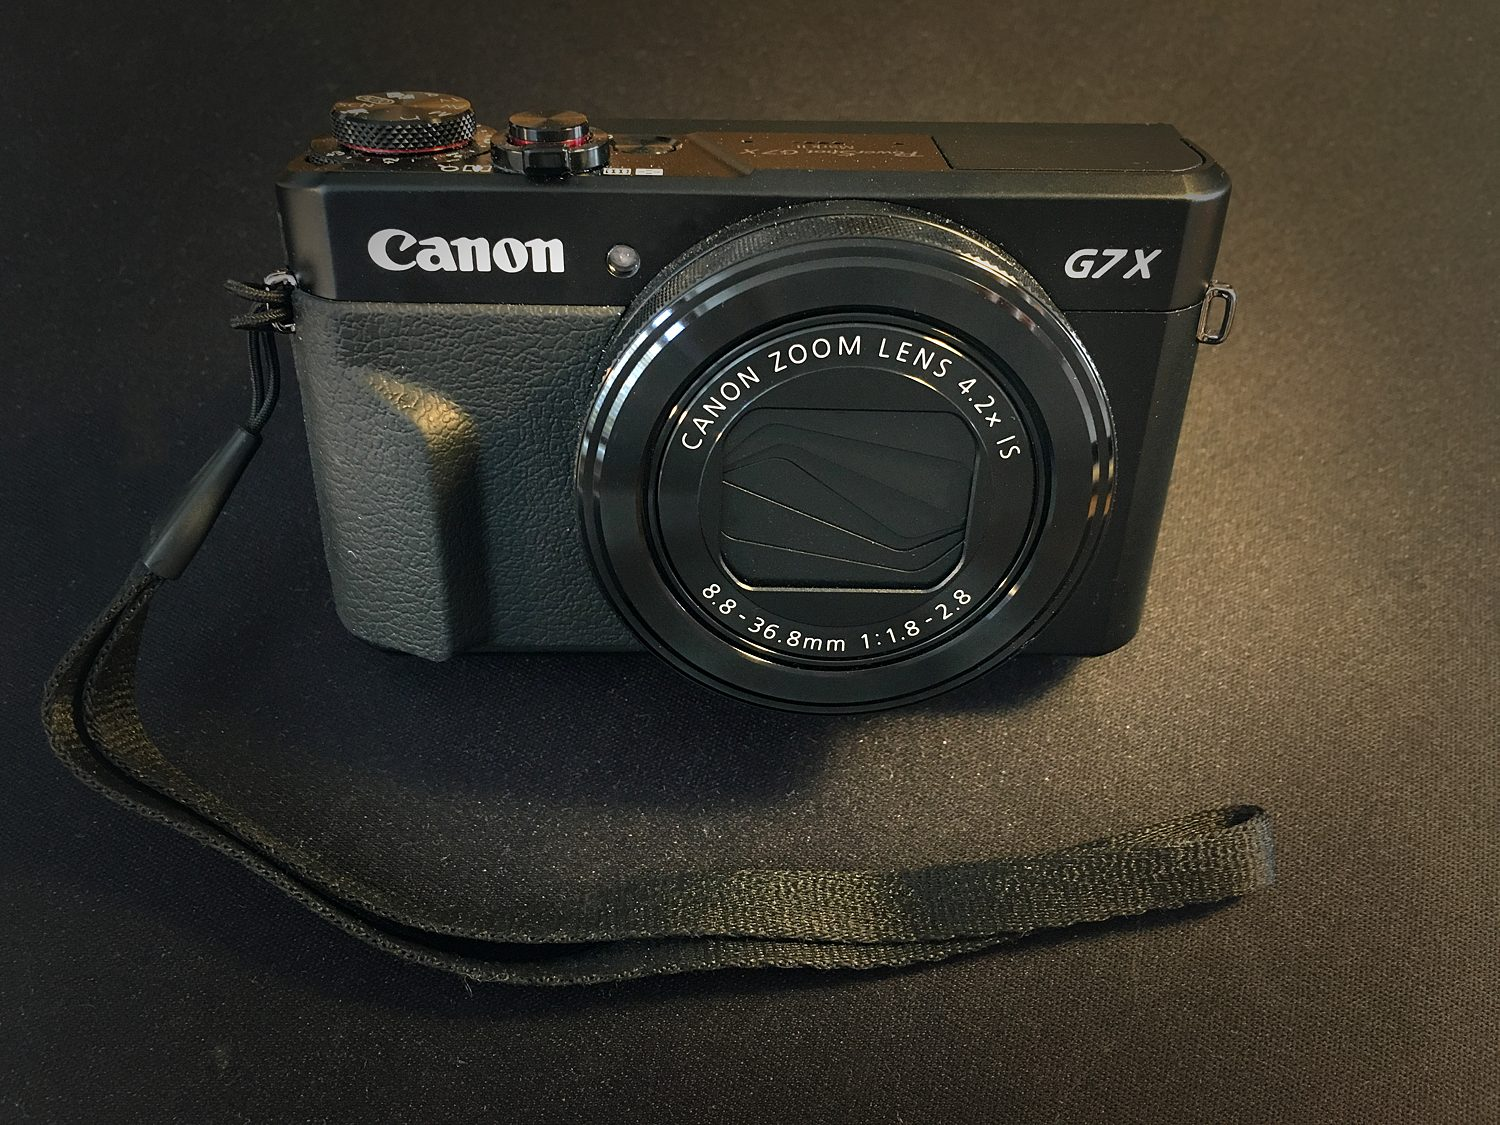 Canon Powershot G7X MkII point and shoot